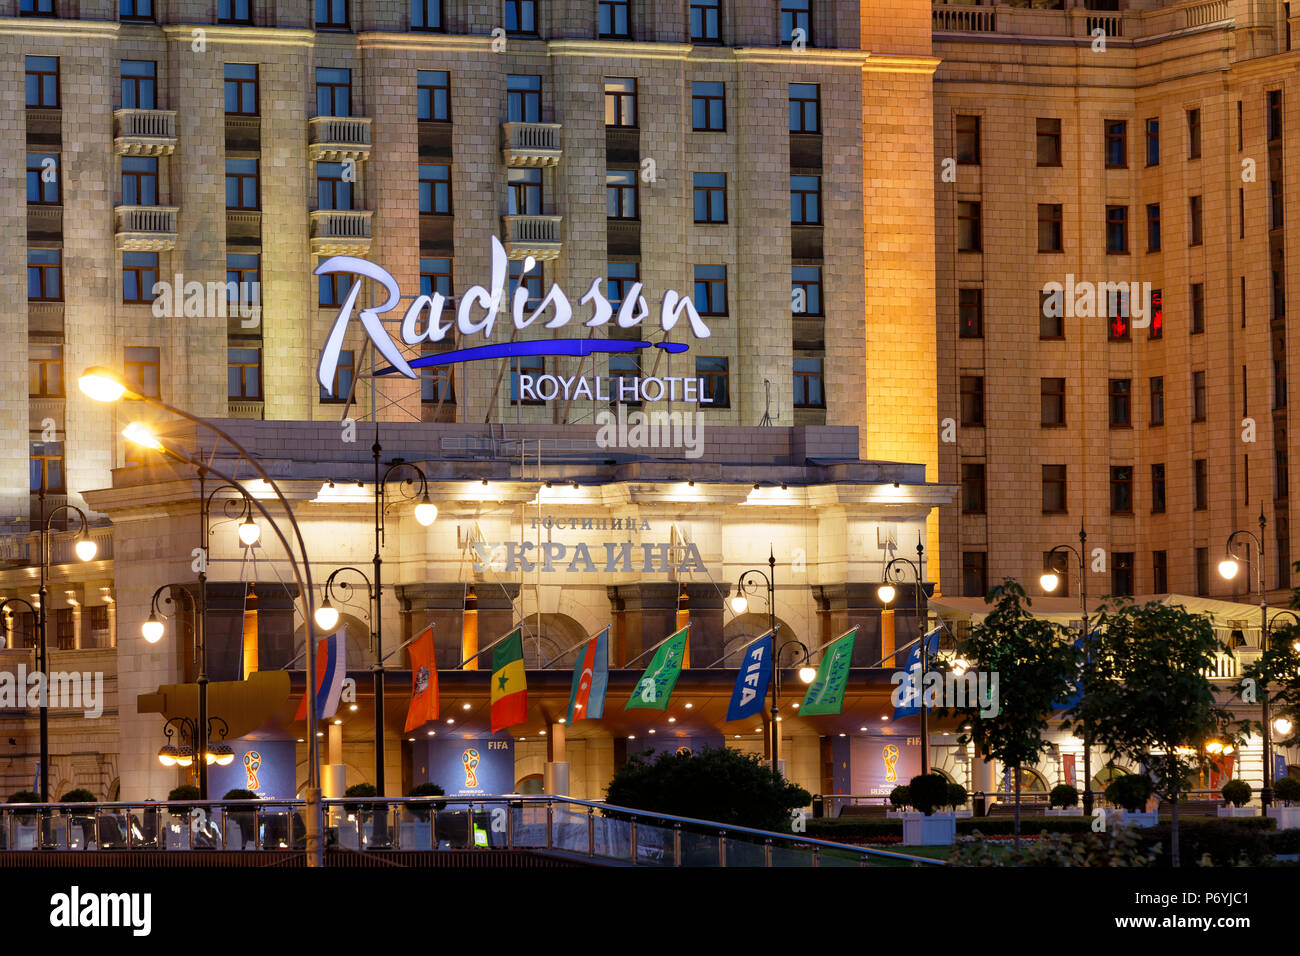 Facade detail of Radisson Royal Hotel Stalinist style high-rise building illuminated at dusk. Moscow, Russia. - Stock Image